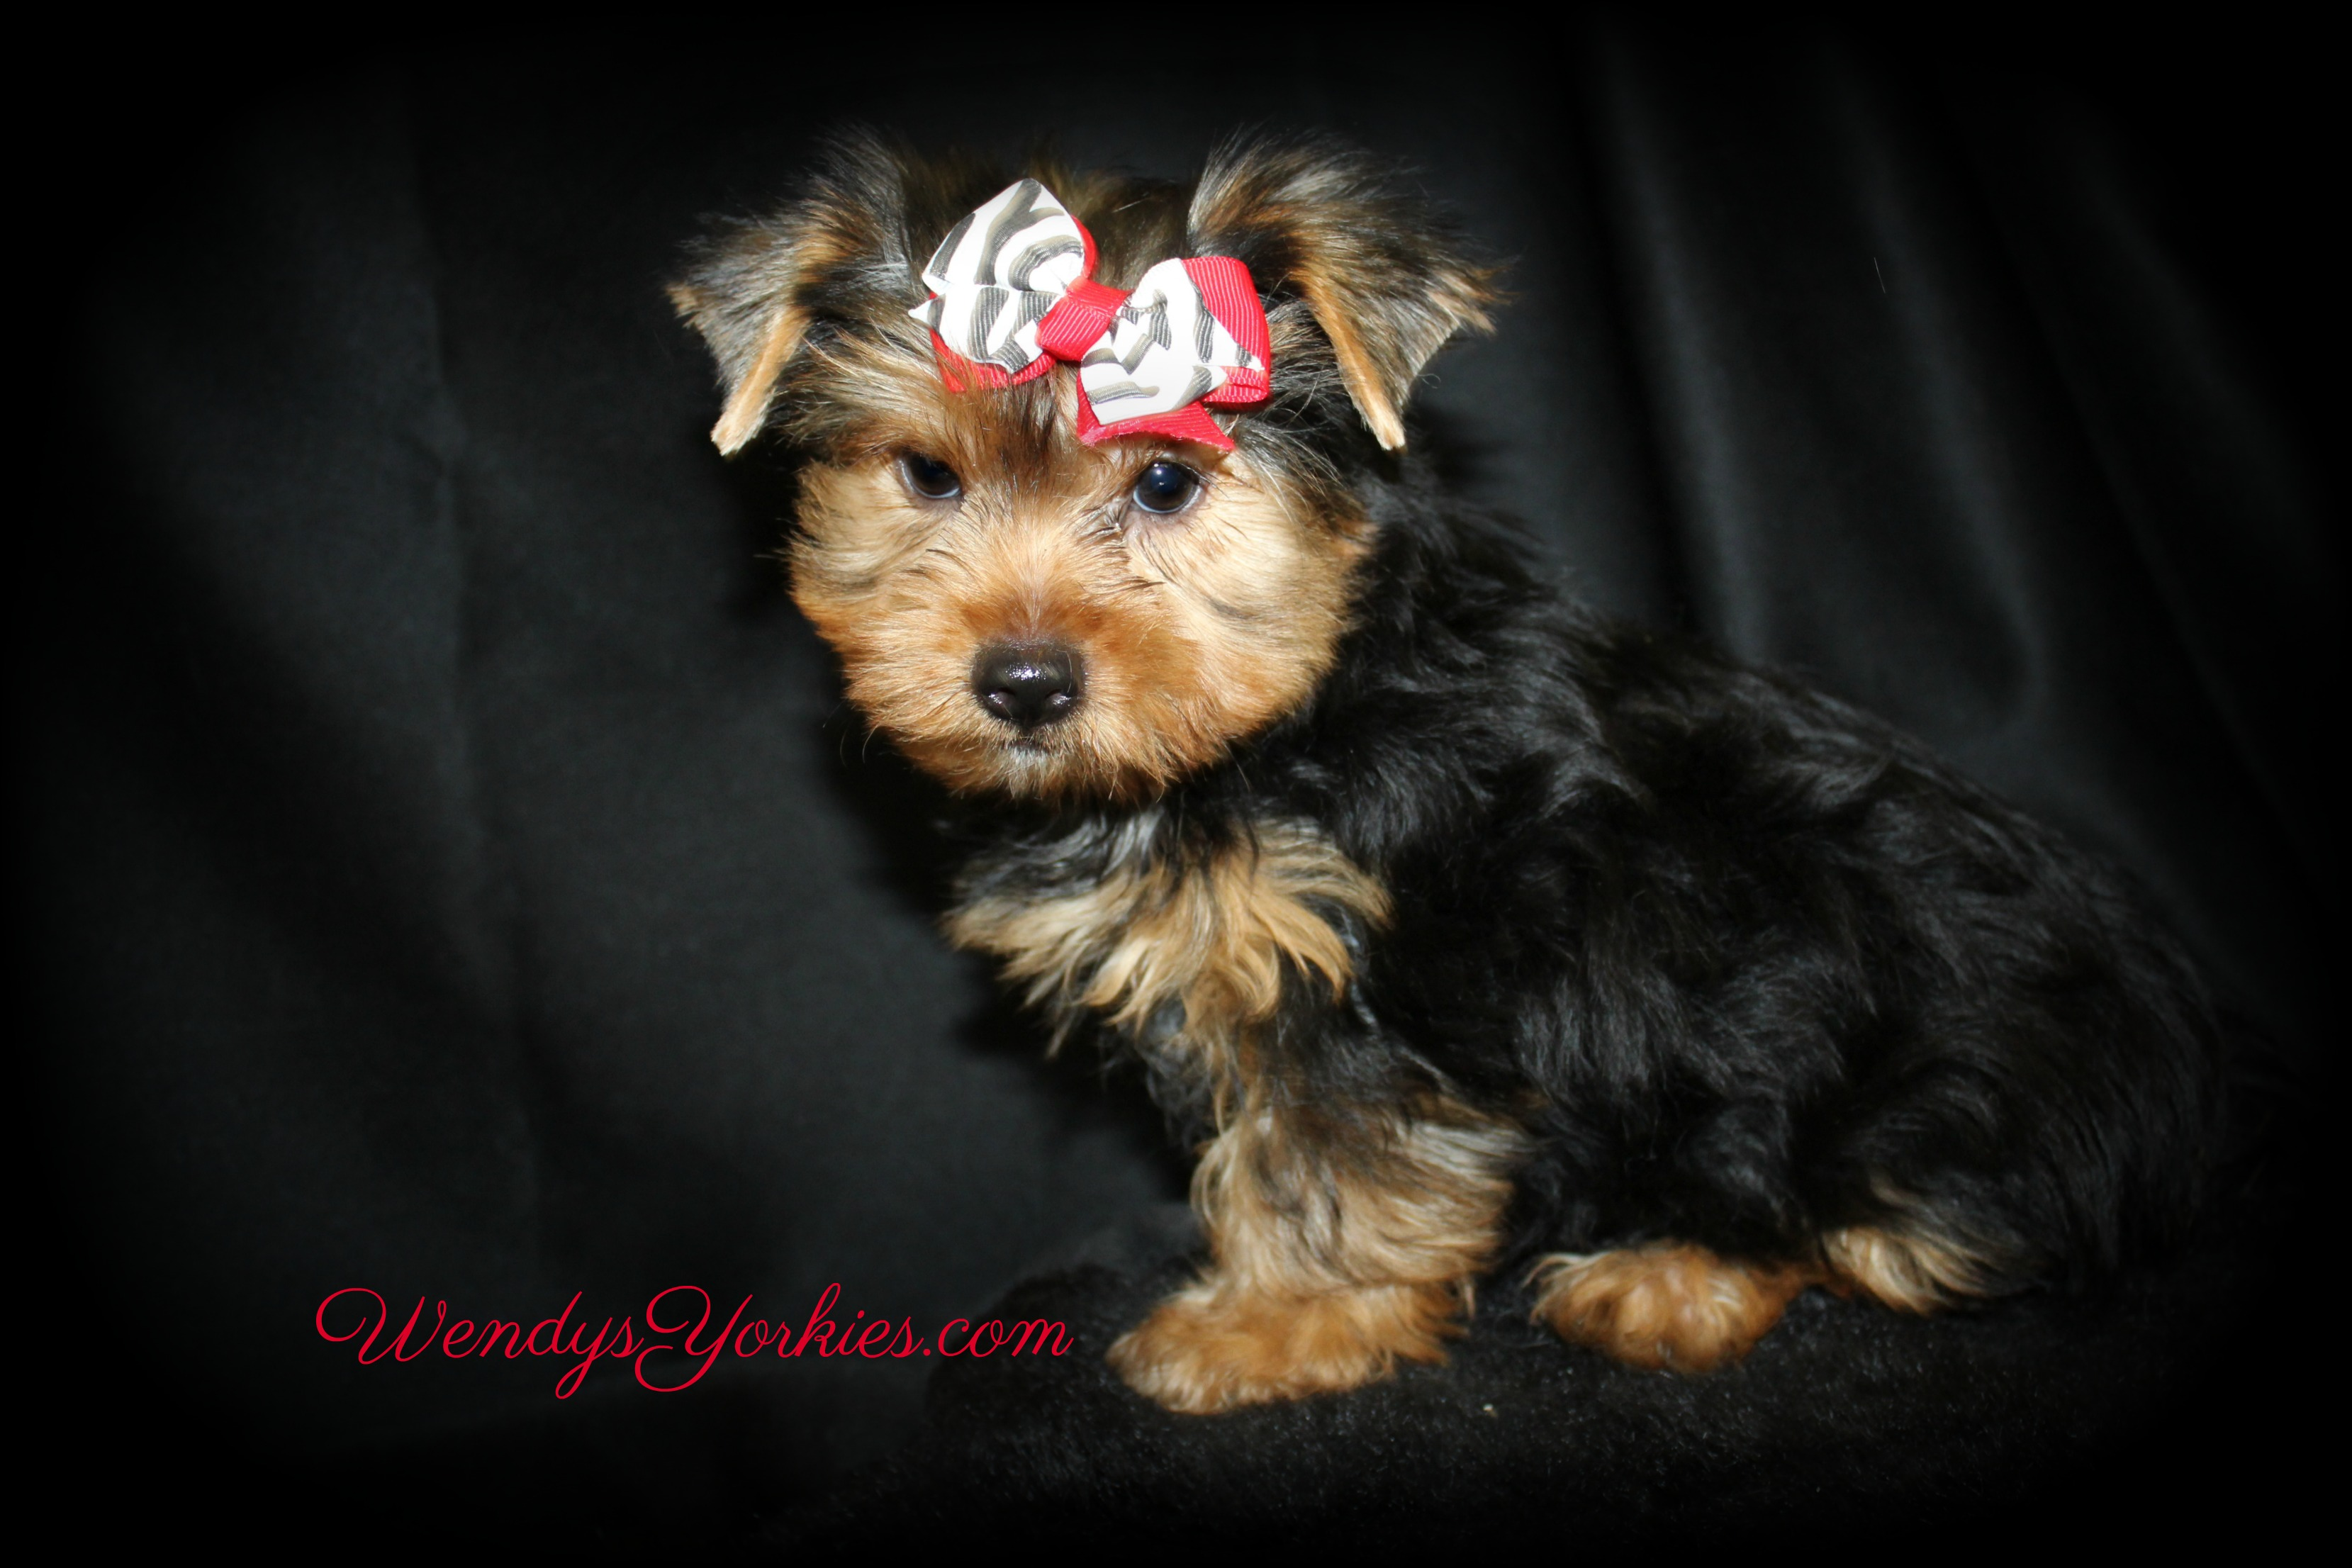 Rascal, Male Yorkie puppy for sale, WendysYorkies.com